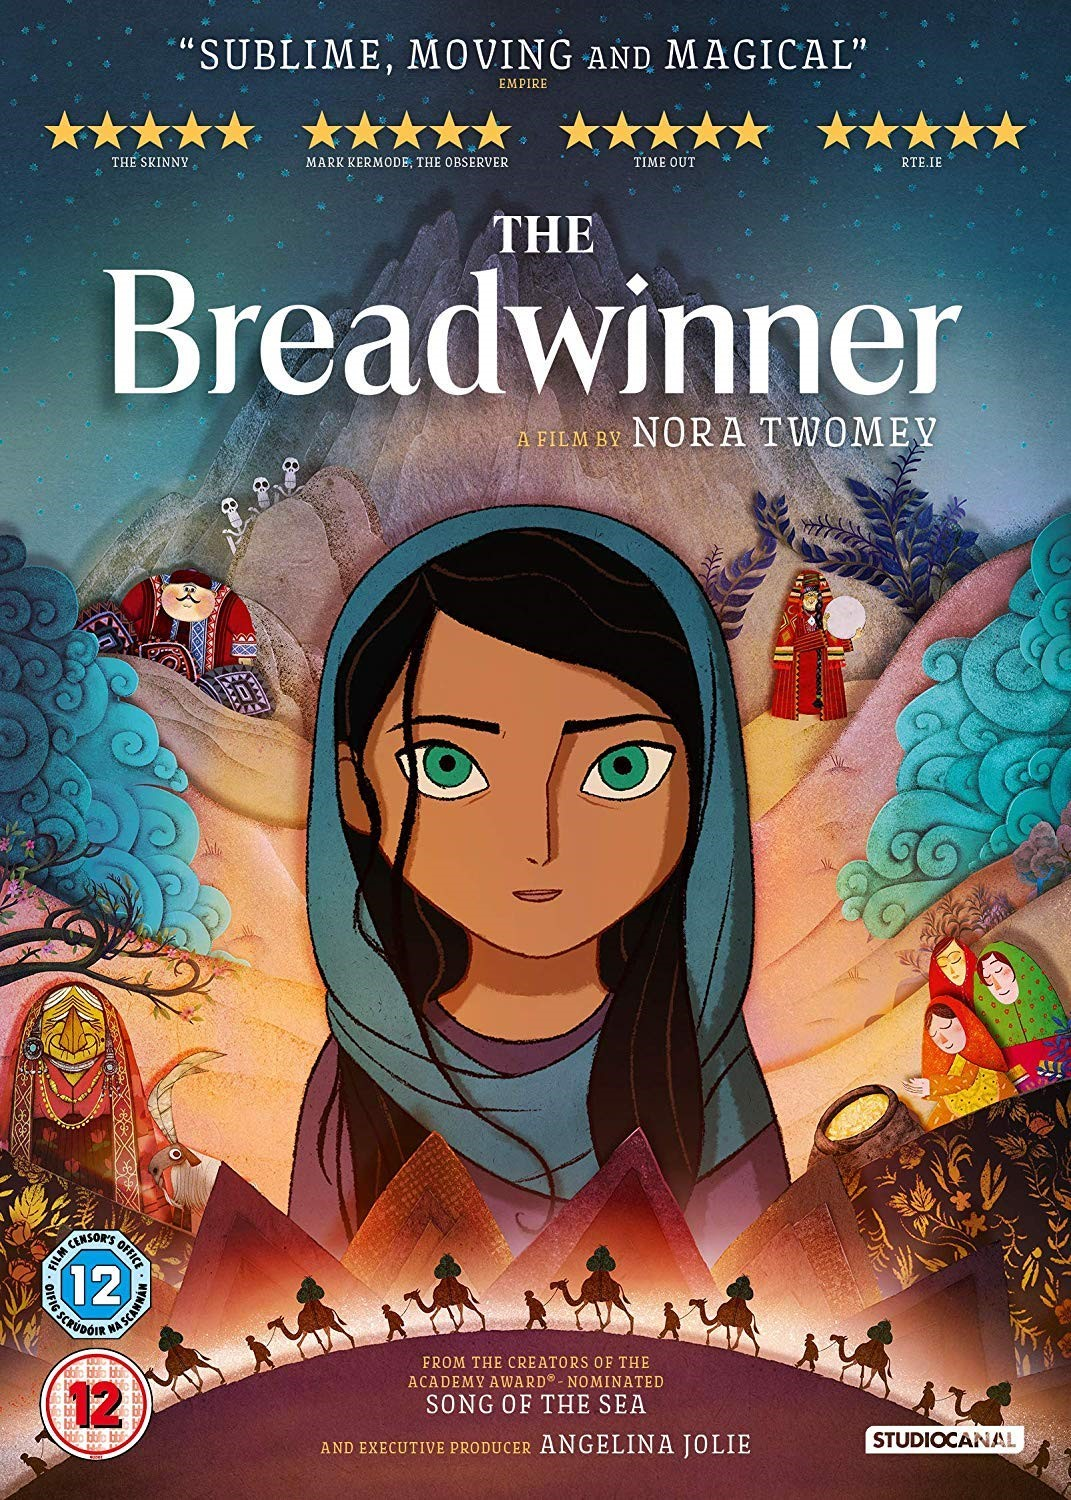 Join the WOW Women's Film Club family screening of The Breadwinner this August - with added cake! Please note that this film is rated a 12A.  Films rated 12A are suitable for children aged 12 and over. However, people younger than 12 may see a 12A so long as they are accompanied by an adult. In such circumstances, responsibility for allowing a child under 12 to view lies with the accompanying adult. The event will start at 10:00 and will finish at 13:00 Parvana is an11-year-old girl who lives under Taliban rule in Afghanistan in 2001. After the wrongful arrest of her father, Parvana cuts off her hair and dresses like a boy to support her family. Working alongside a friend, she soon discovers a new world of freedom and danger. Drawing strength from the fantastical stories she invents, Parvana embarks on an epic quest to find her father and reunite her family. Runtime: 1 hour 34 minutes